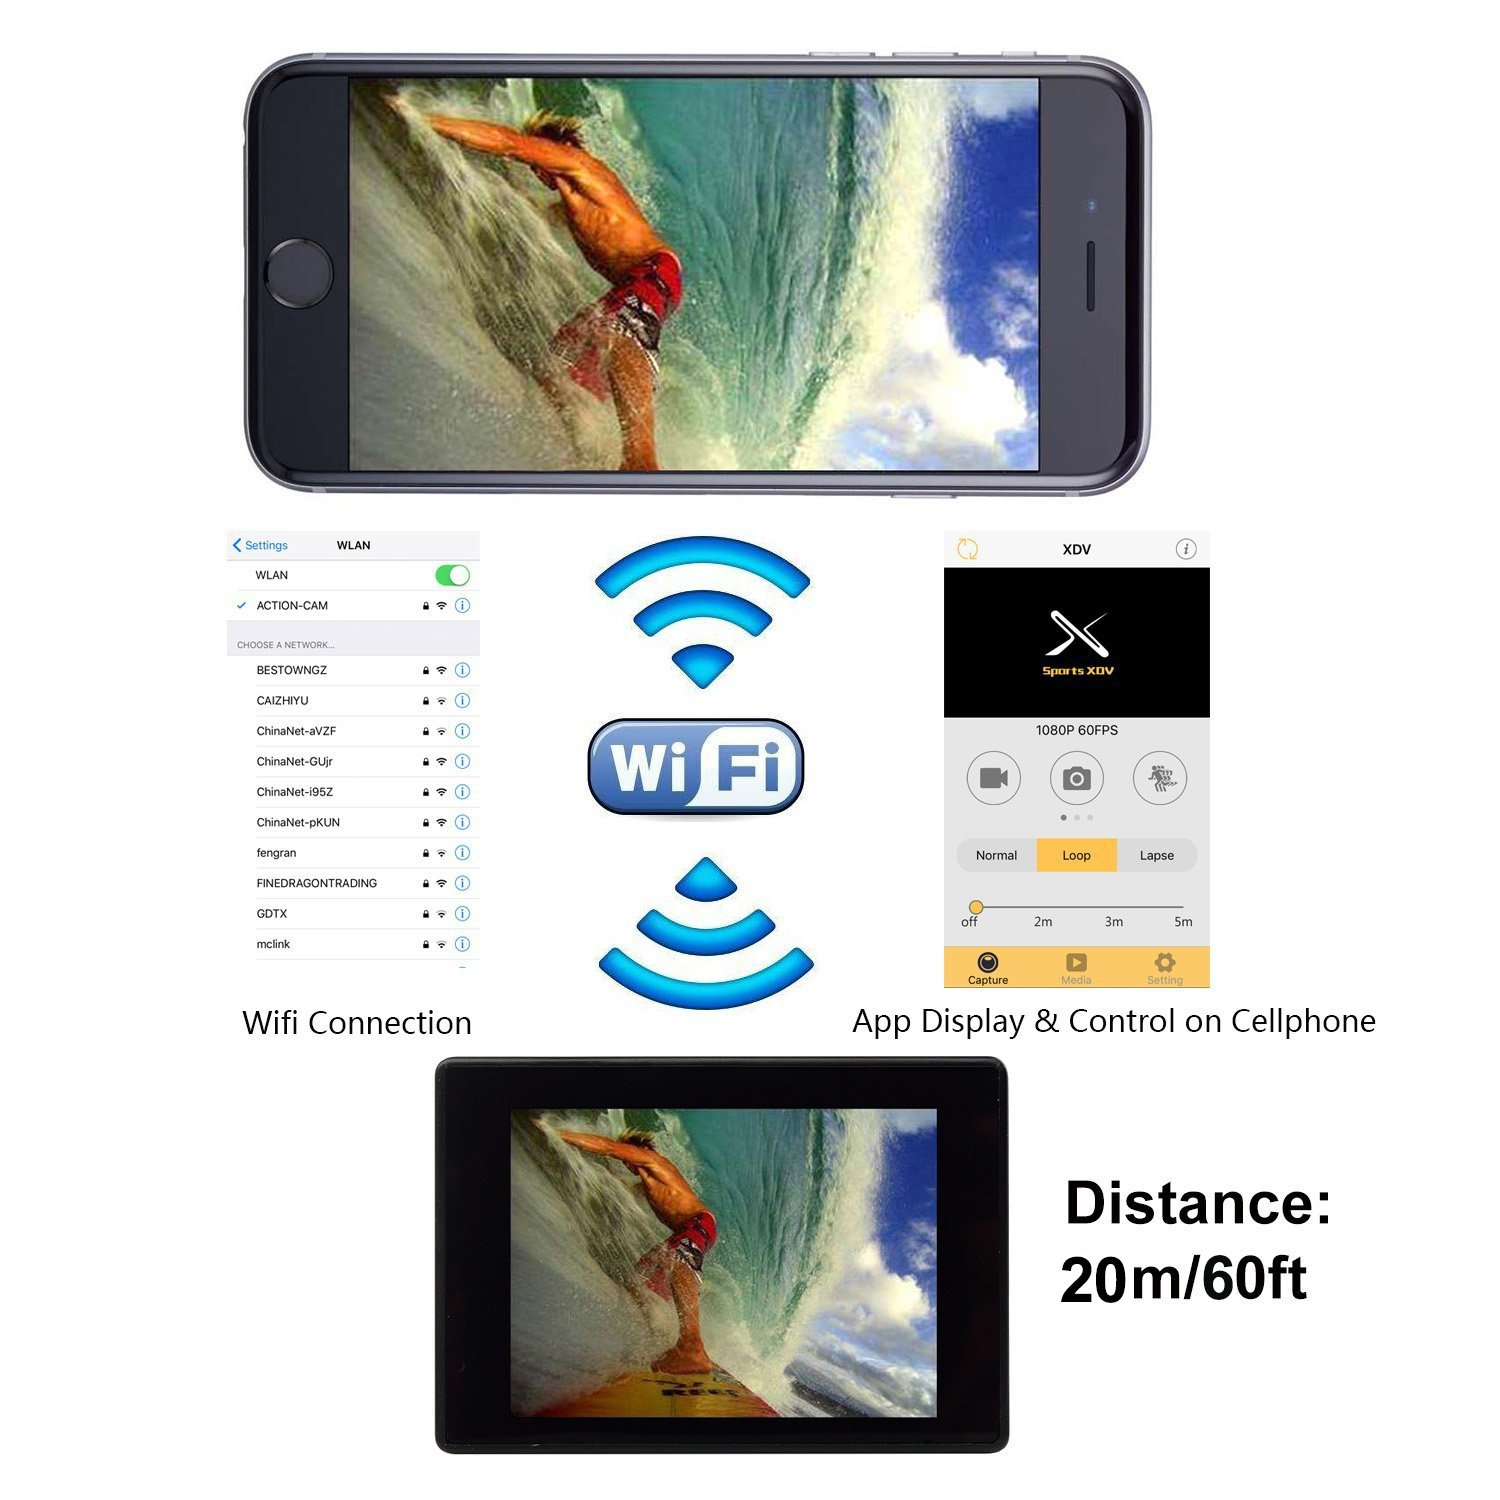 Waterproof Action Camera AD Sports Camera 4K 16MP Wifi Remote Control 170 Ultra Wide Lens SONY Sensor 2017 Newest by Avant Digital (Image #6)